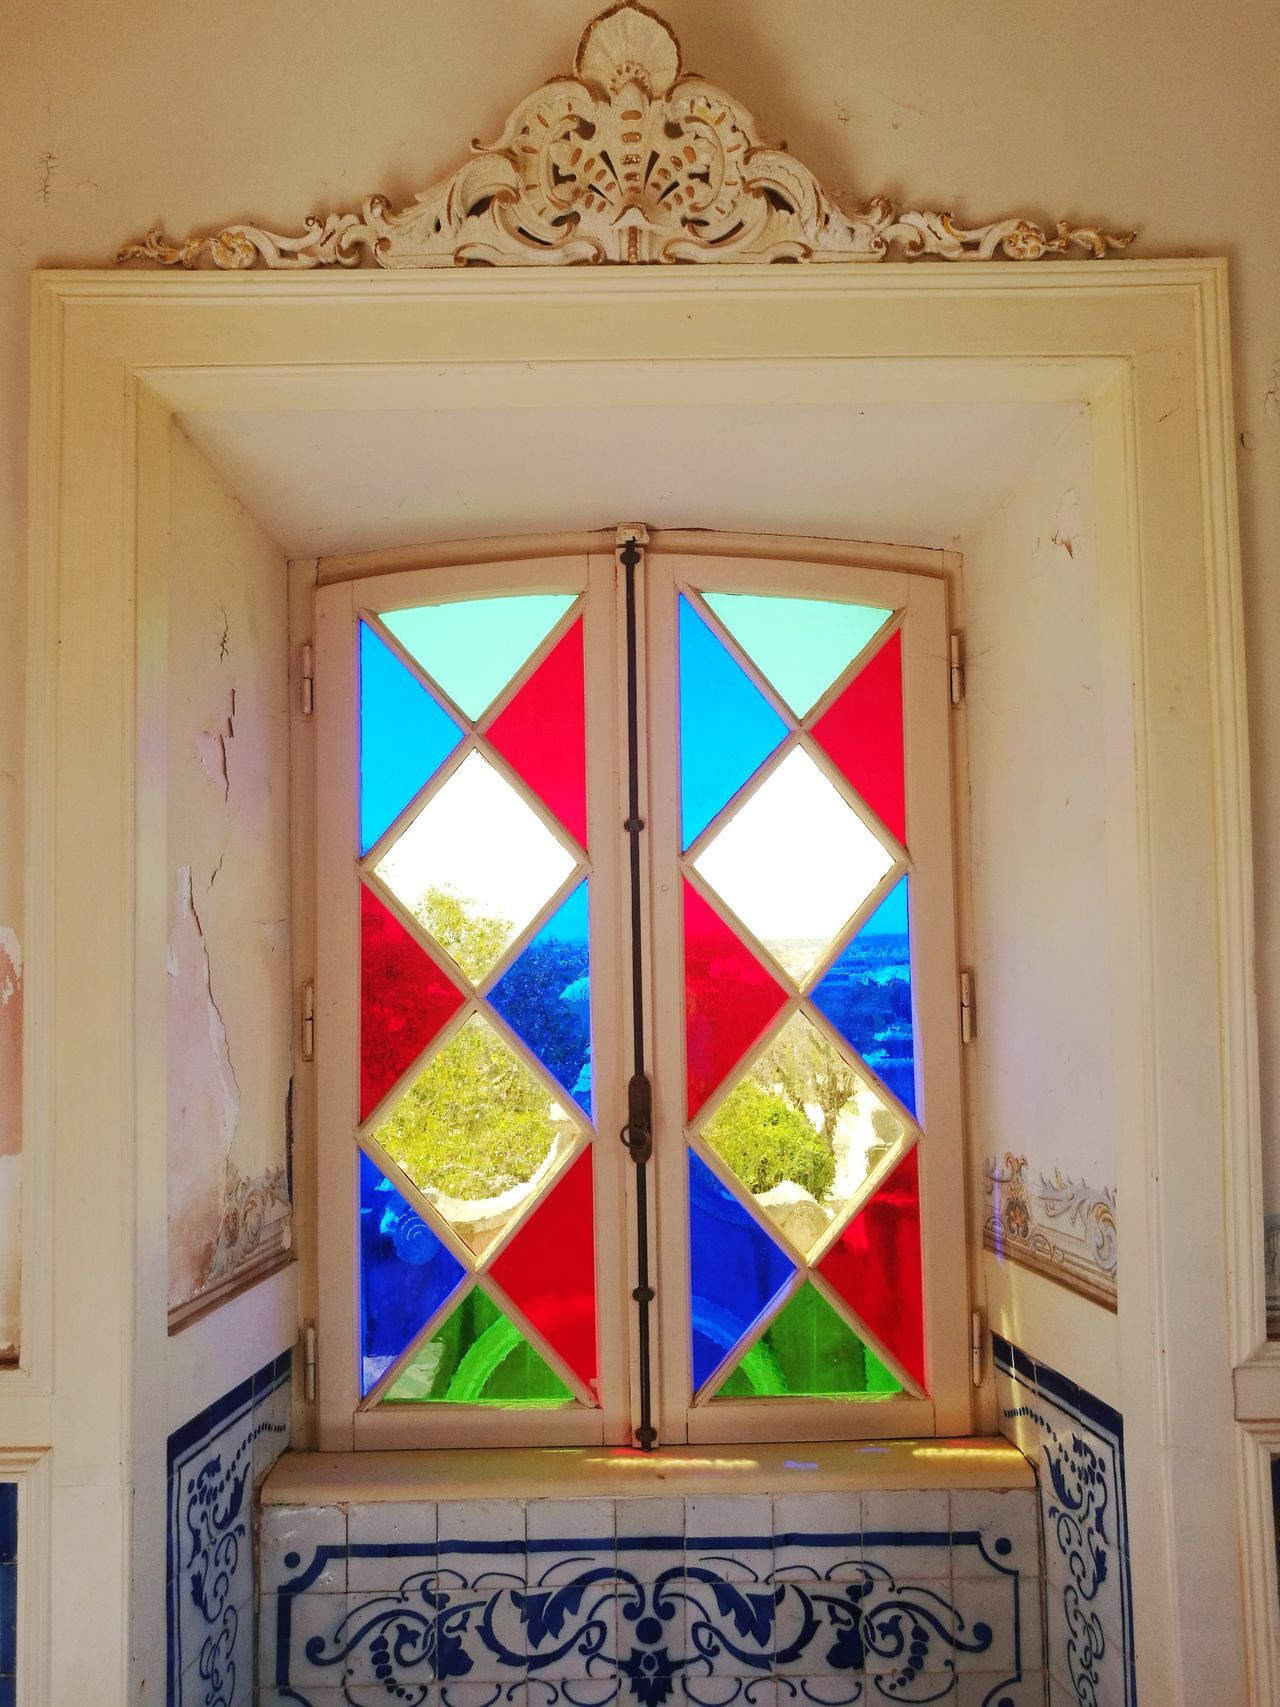 Window Architecture Built Structure Multi Colored Travel Destinations Indoors  Pattern No People Day Building Exterior Close-up Colors Of Windows Colors